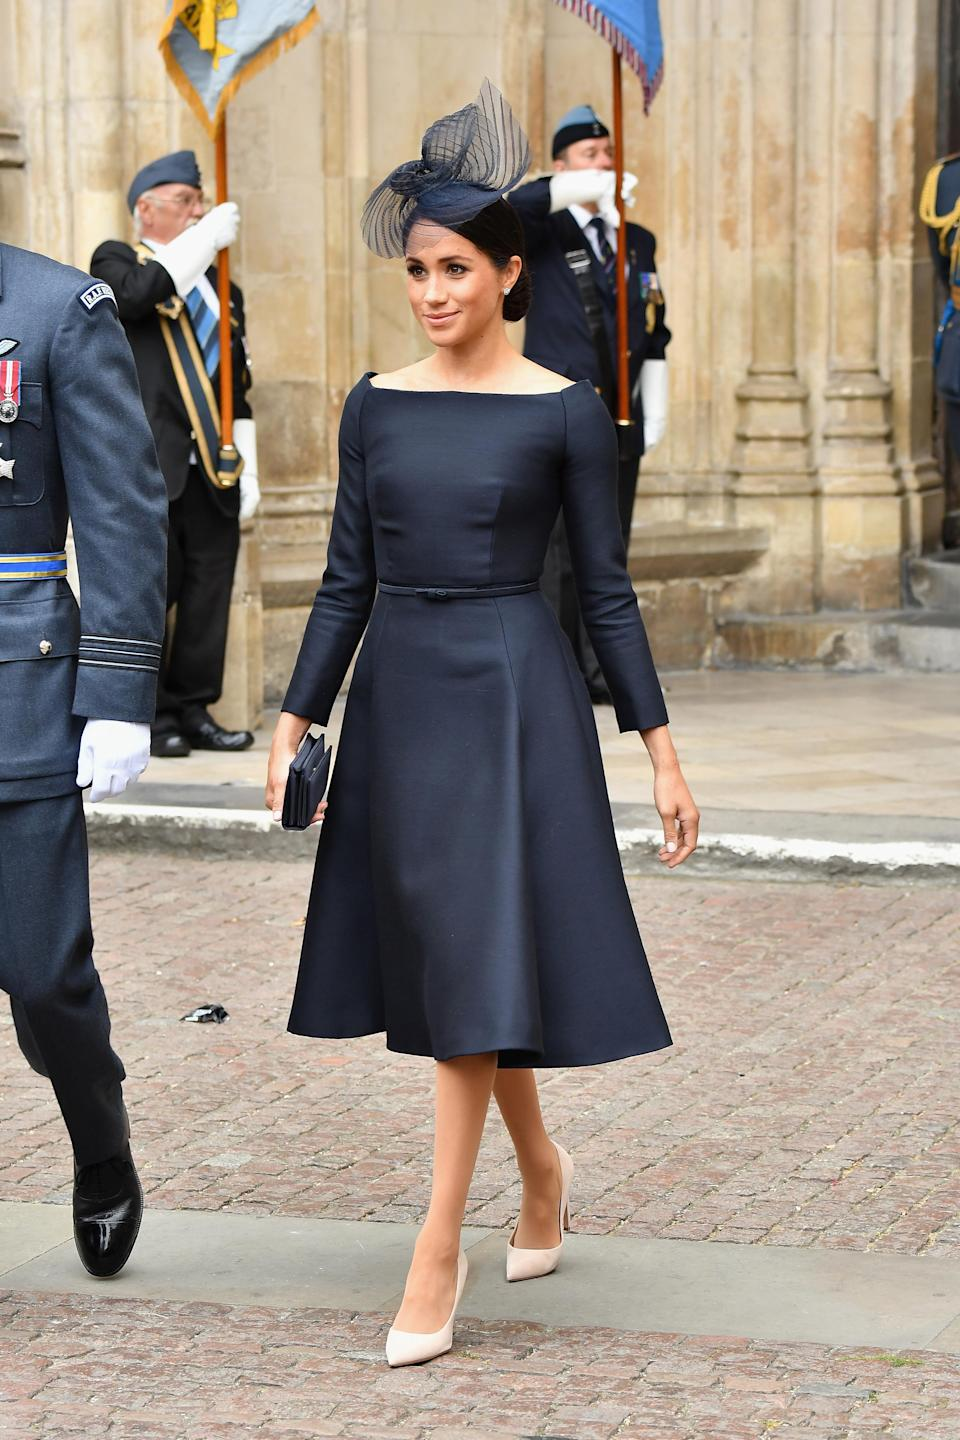 <p>Meghan wore a dark Dior couture dress, believed to have cost £2,000 according to The Mail, to mark the centenary of the RAF in July 2018. She teamed it with heels and a matching bag from the French fashion house and a Philip Treacy hat [Photo: Getty] </p>